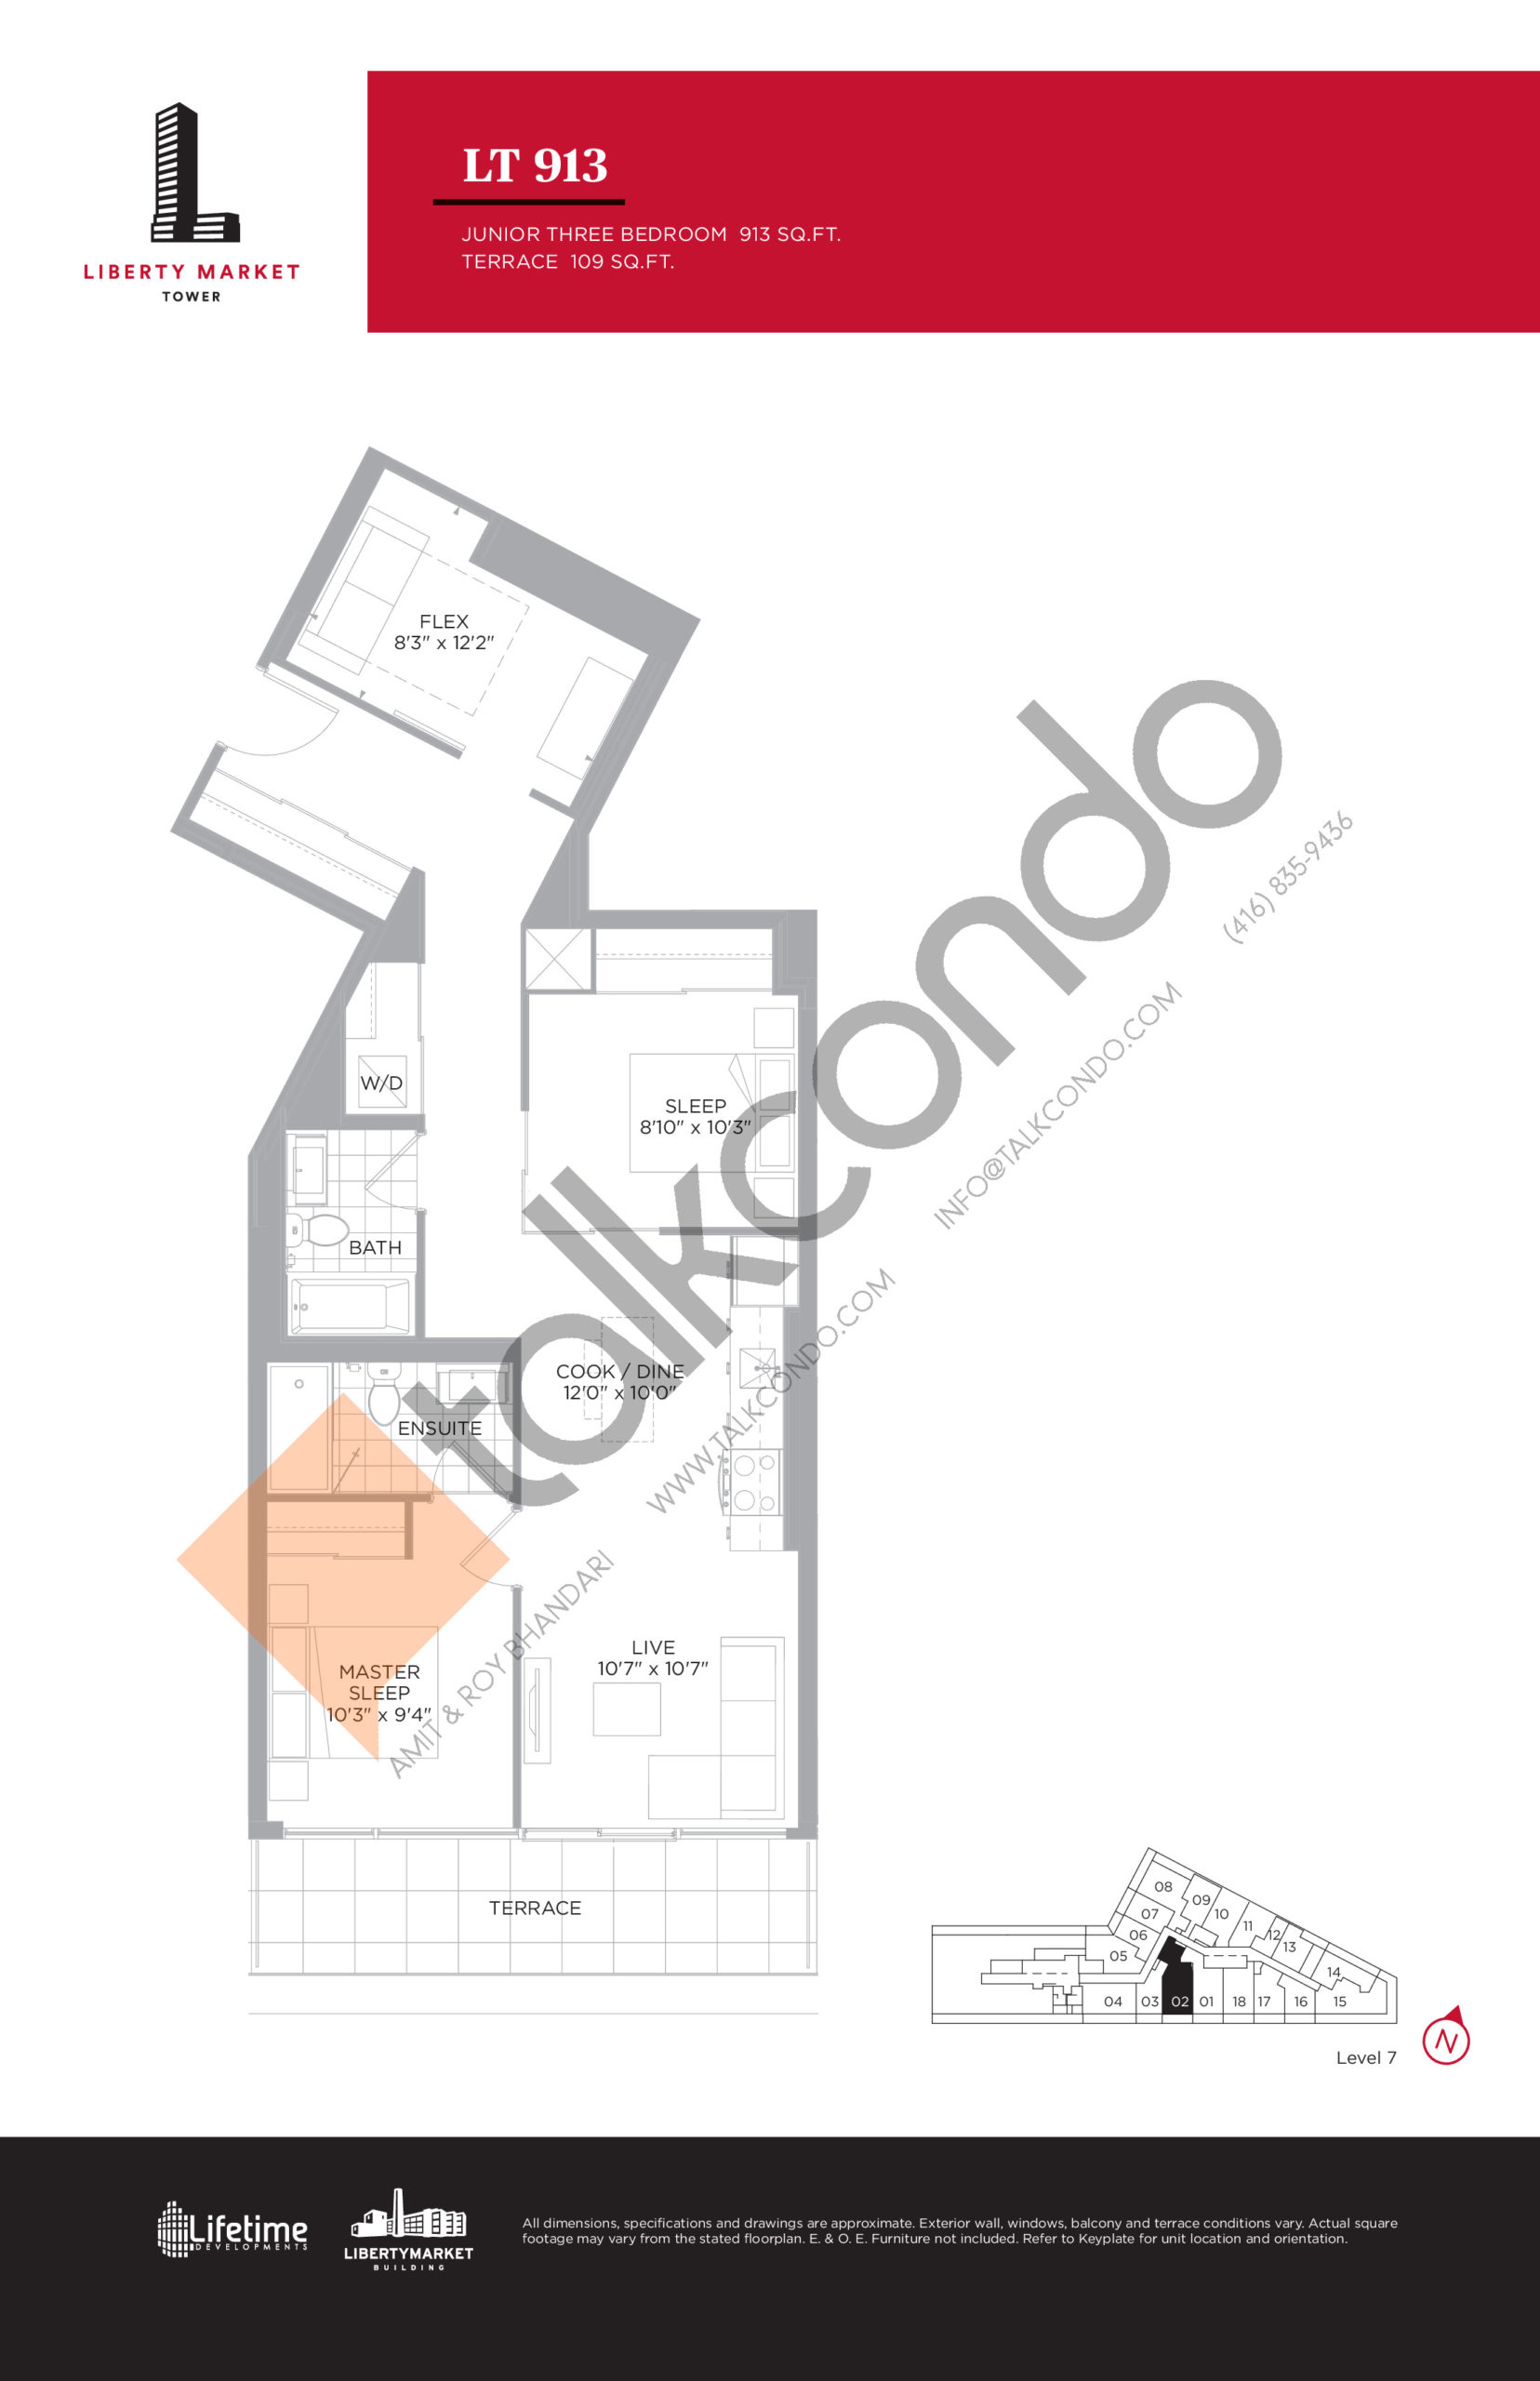 LT 913 - Terrace Collection Floor Plan at Liberty Market Tower Condos - 913 sq.ft